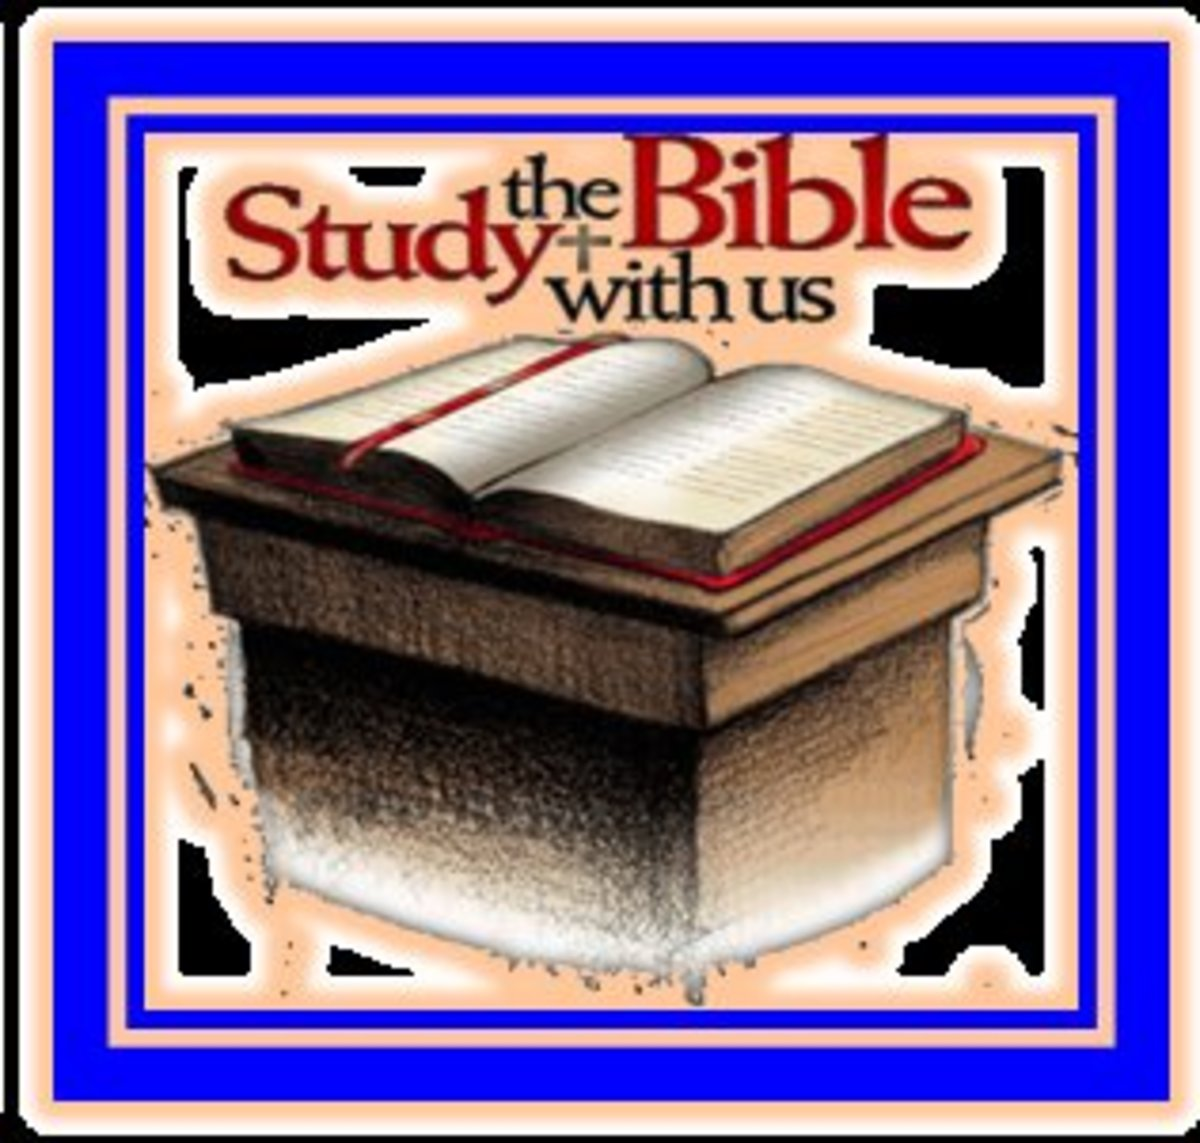 TI International Bible Institute and Ministry